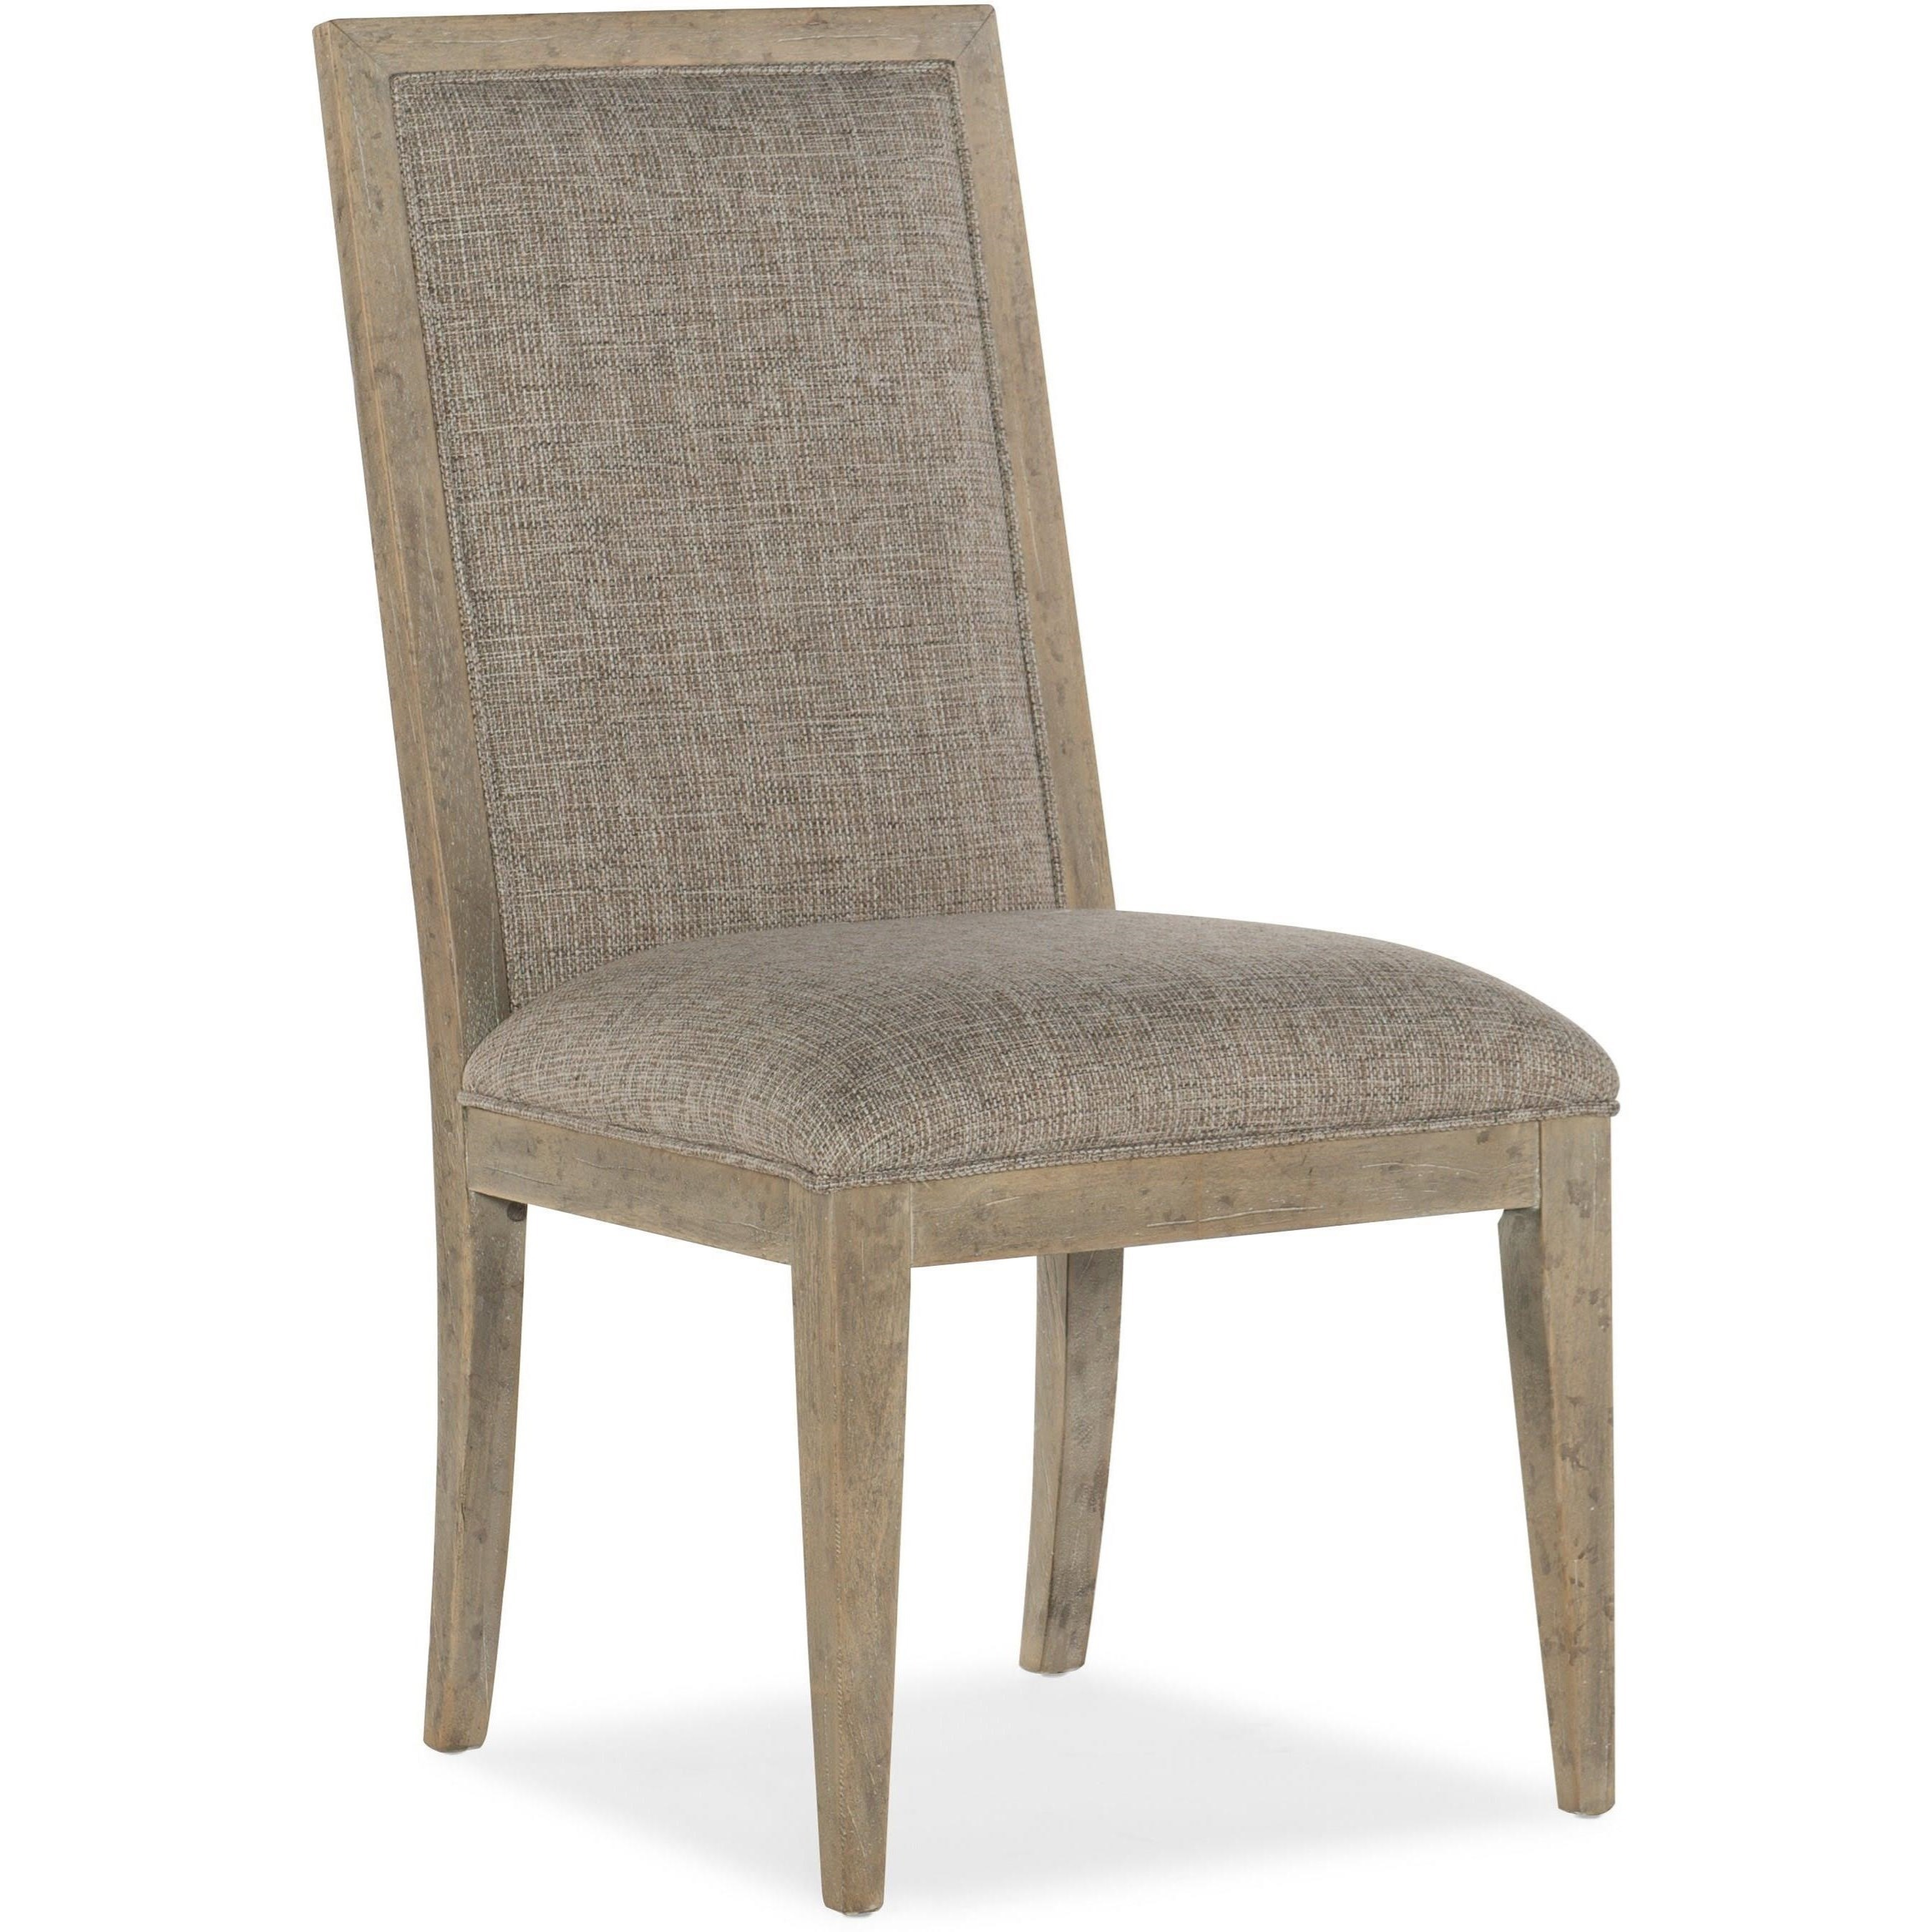 American Life-Amani Upholstered Side Chair at Williams & Kay